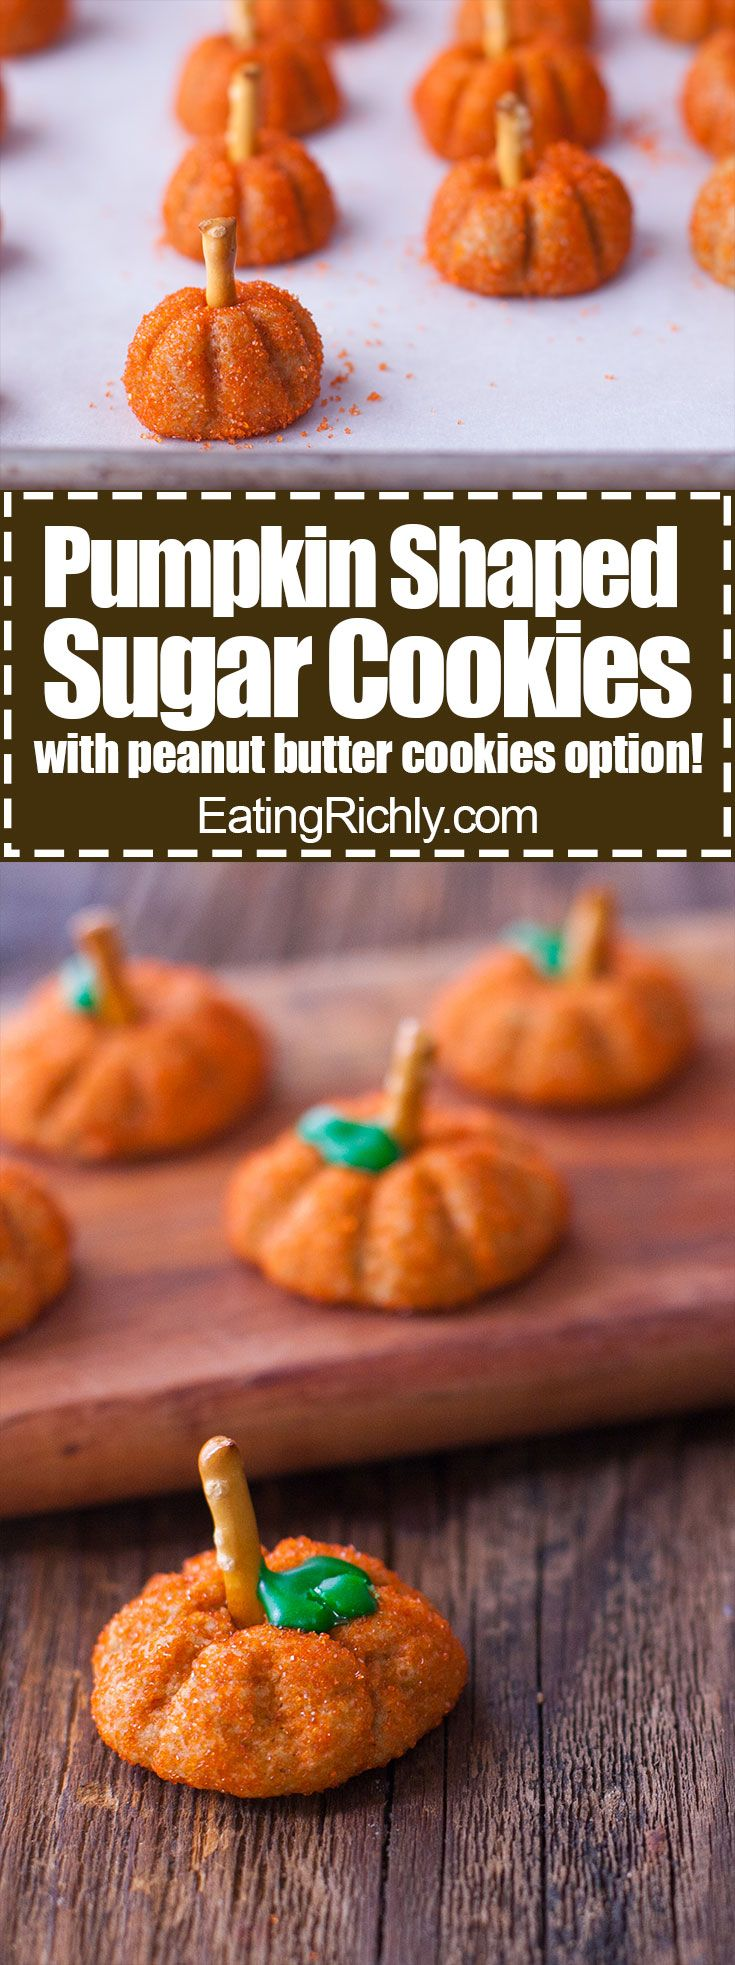 It's so easy to make these cute pumpkin shaped sugar cookies without a cookie cutter. You can even use refrigerated sugar or peanut butter cookie dough! From EatingRichly.com